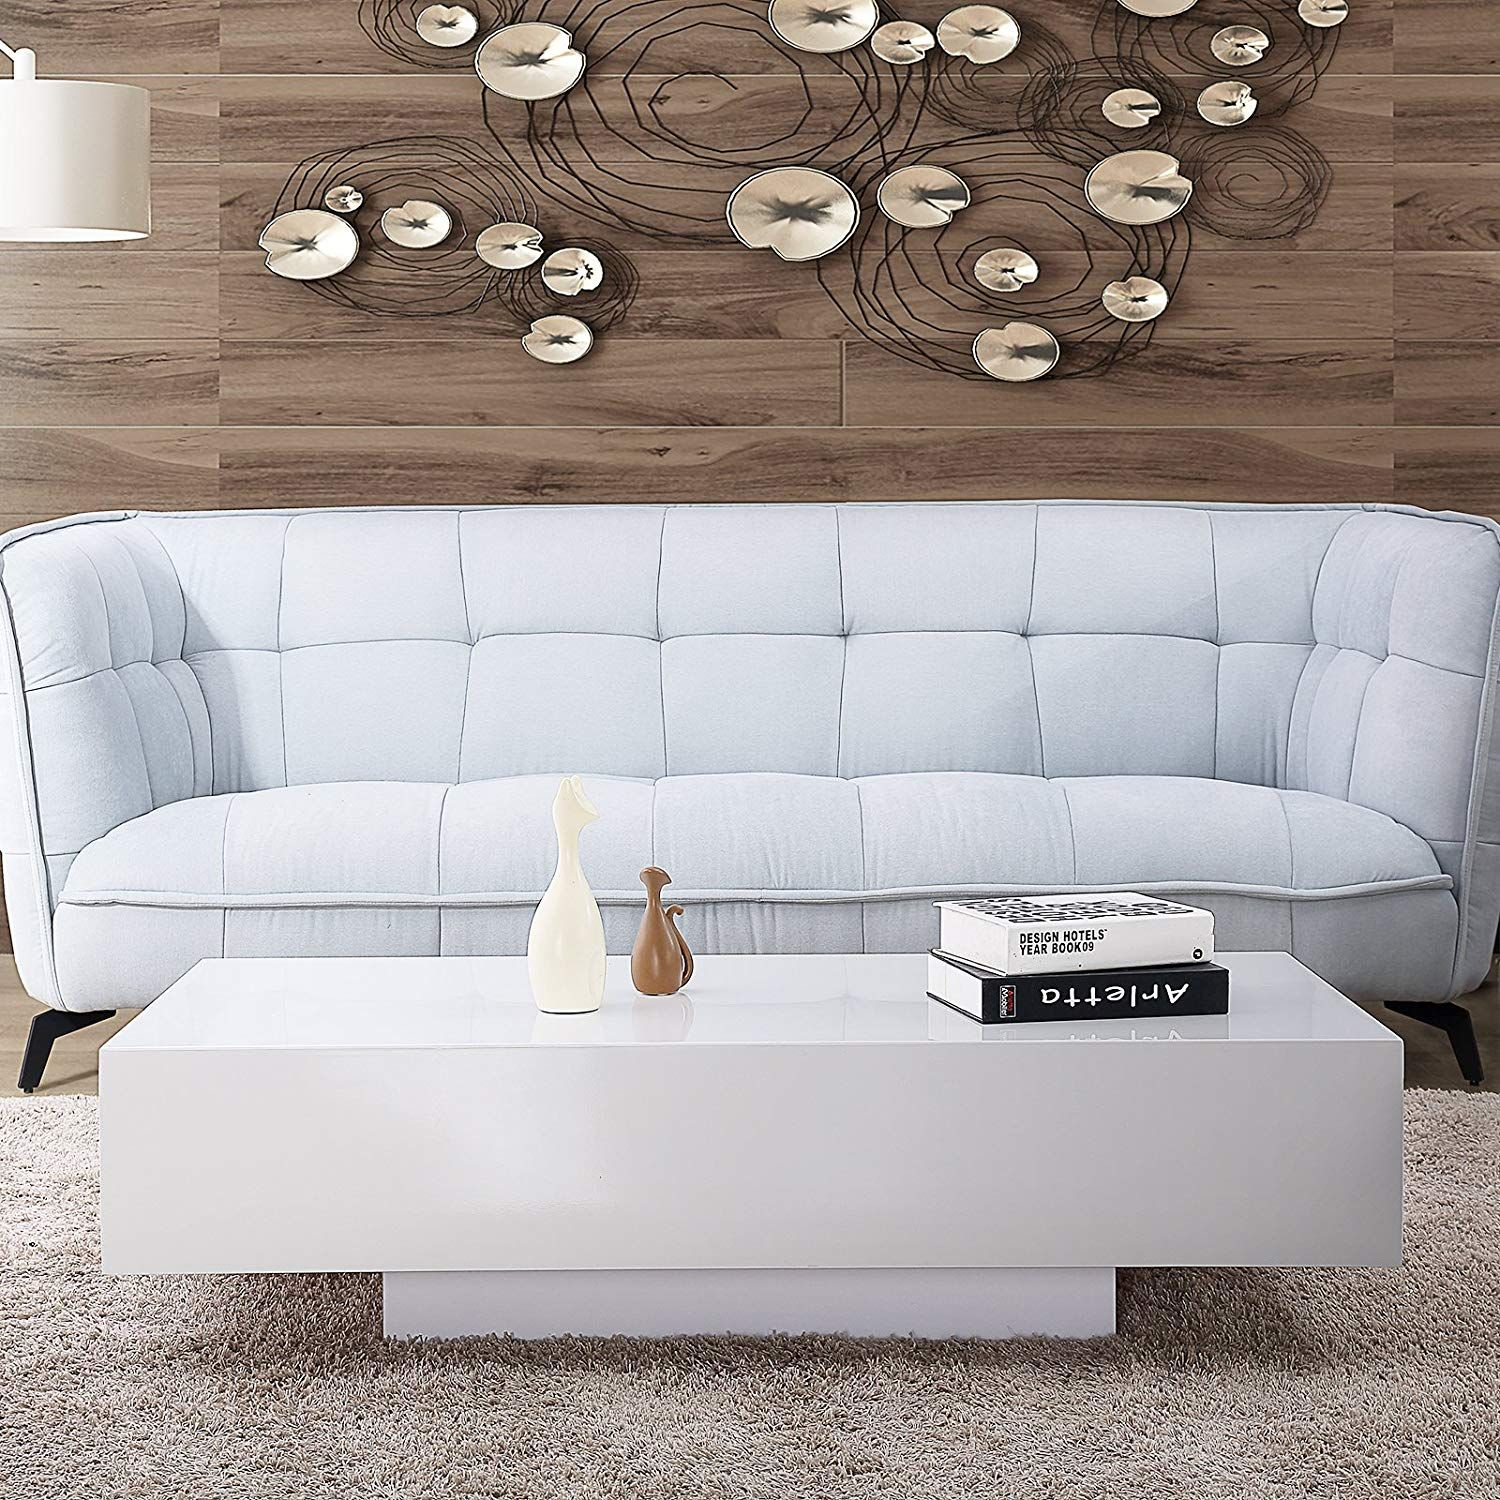 A Glossy White Modern Coffee Table For Your Mid Century Modern Living Room White Coffee Table Living Room White Coffee Table Modern Living Room Side Table [ 1500 x 1500 Pixel ]